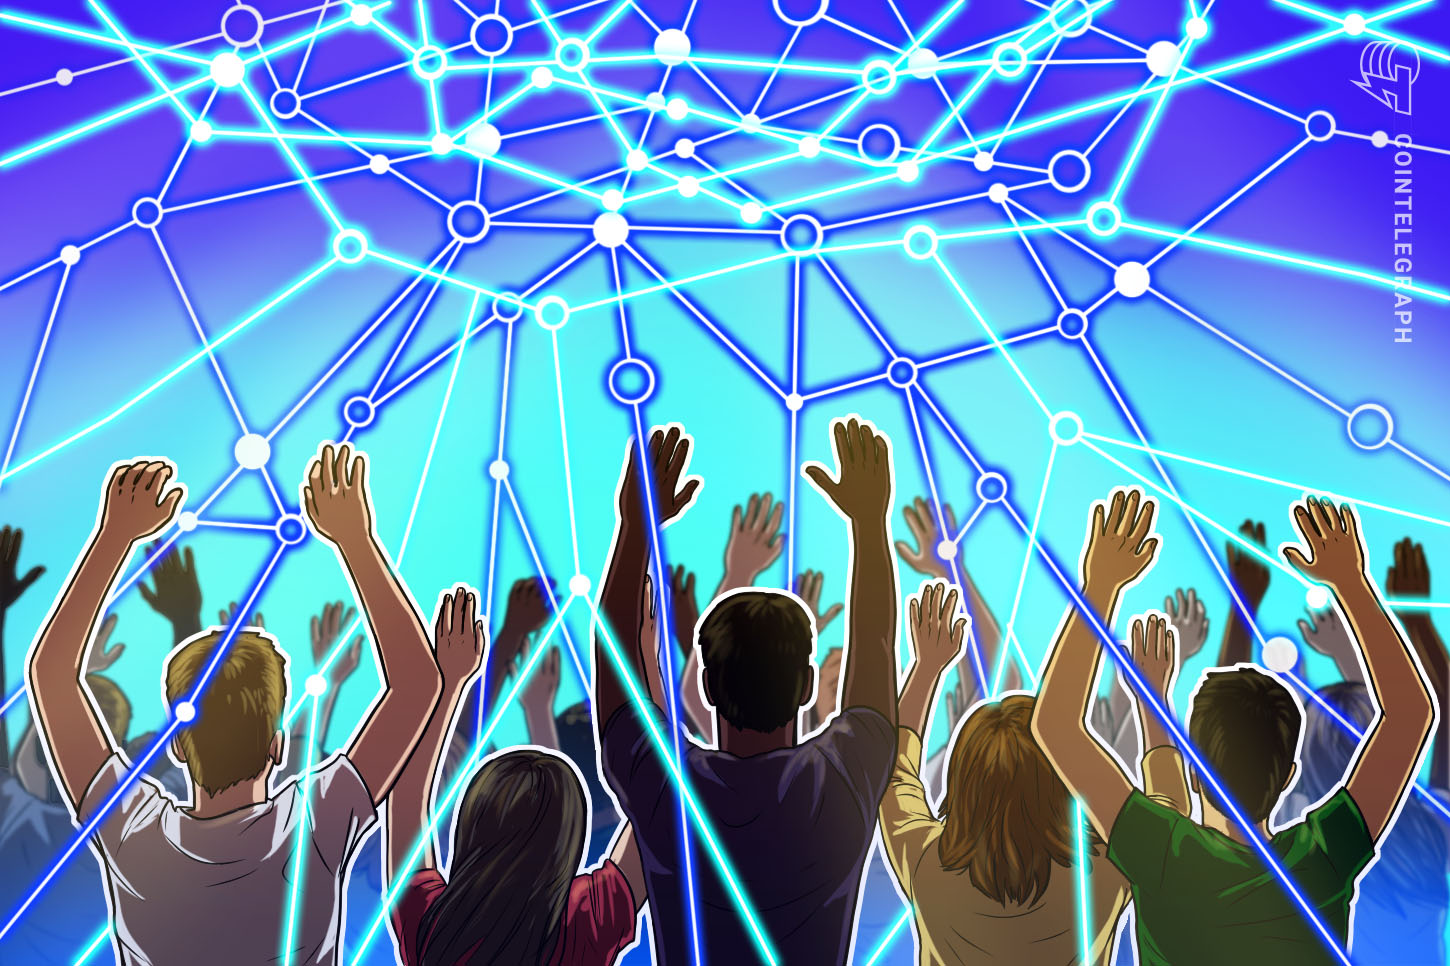 CasperLabs readies blockchain platform for 2021 mainnet launch with $14M private sale